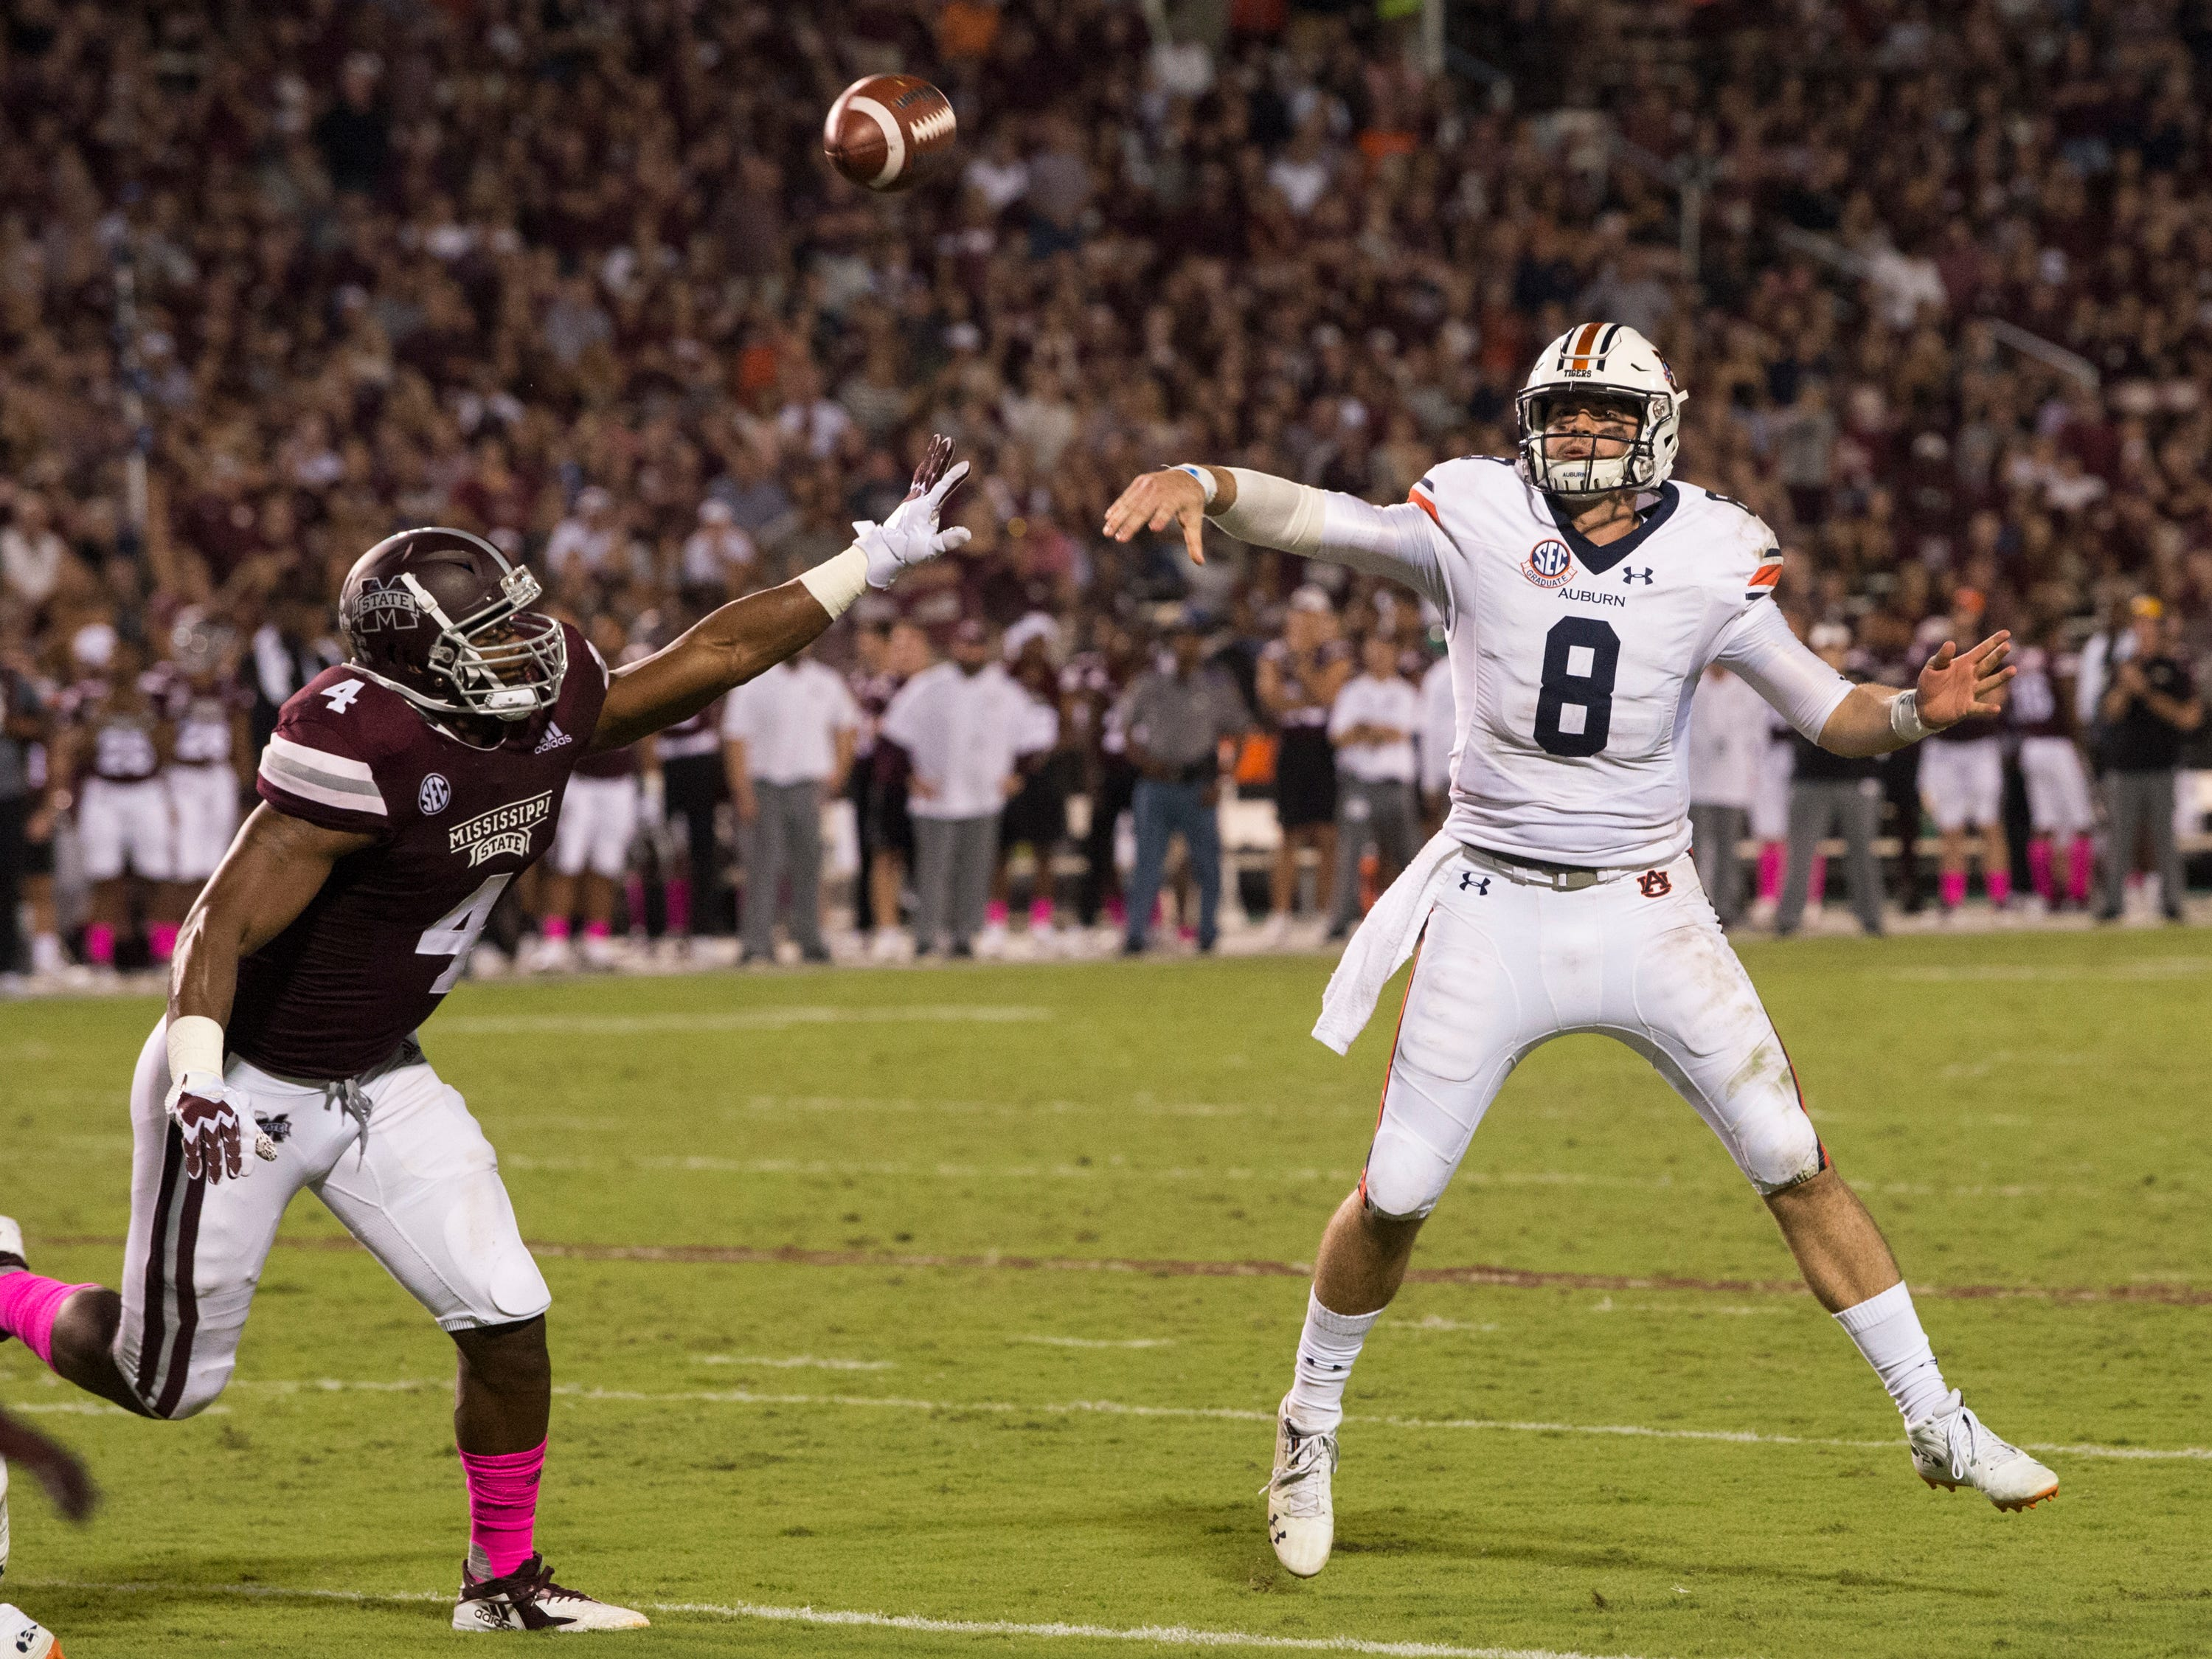 Auburn's Jarrett Stidham (8) throws the ball to the back of the end zone at Davis Wade Stadium in Starkville, Miss., on Saturday, Oct. 6, 2018. Mississippi State defeated Auburn 23-9.